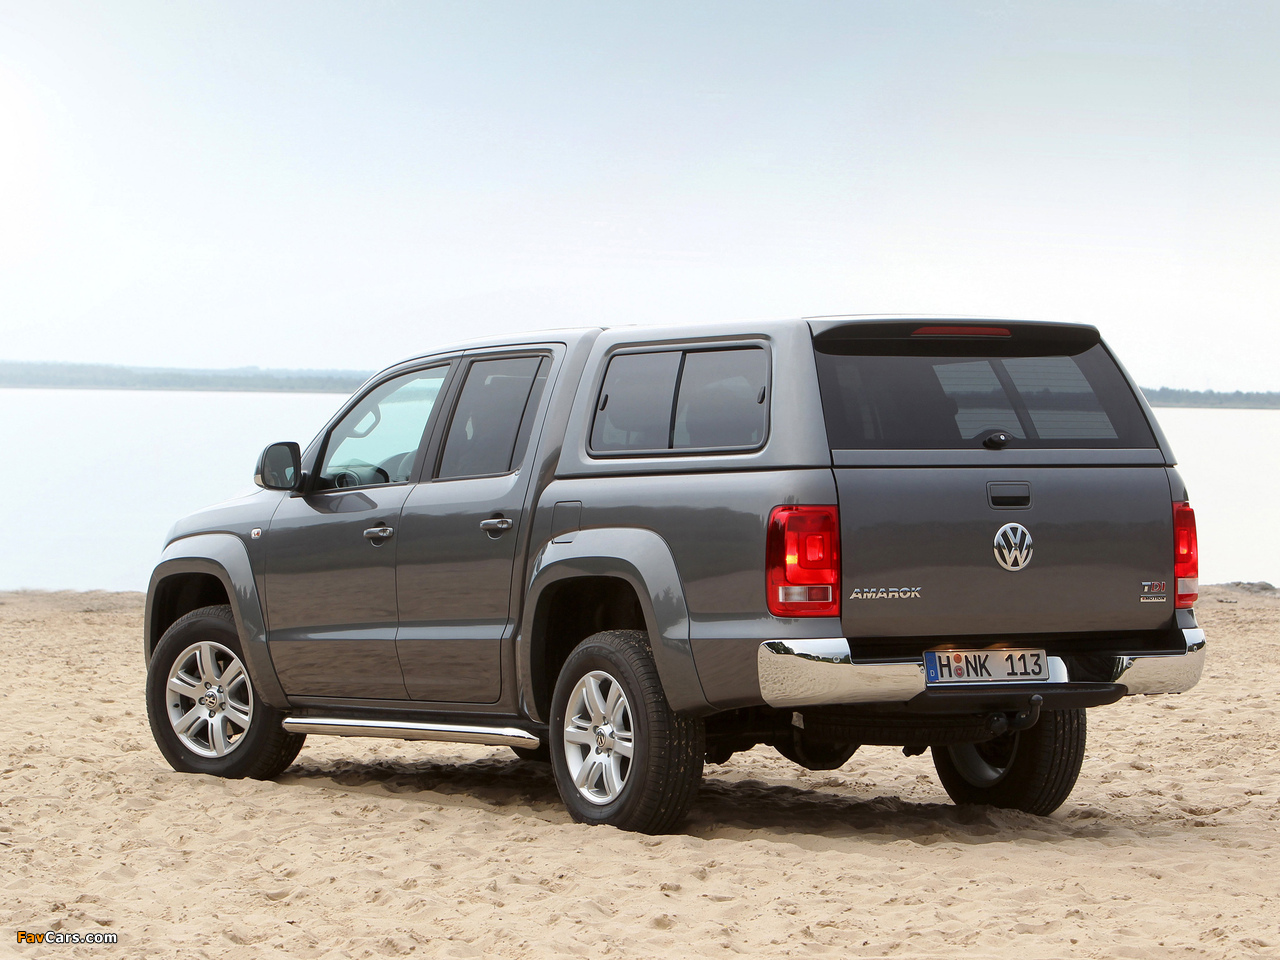 Volkswagen Amarok wallpapers (1280 x 960)